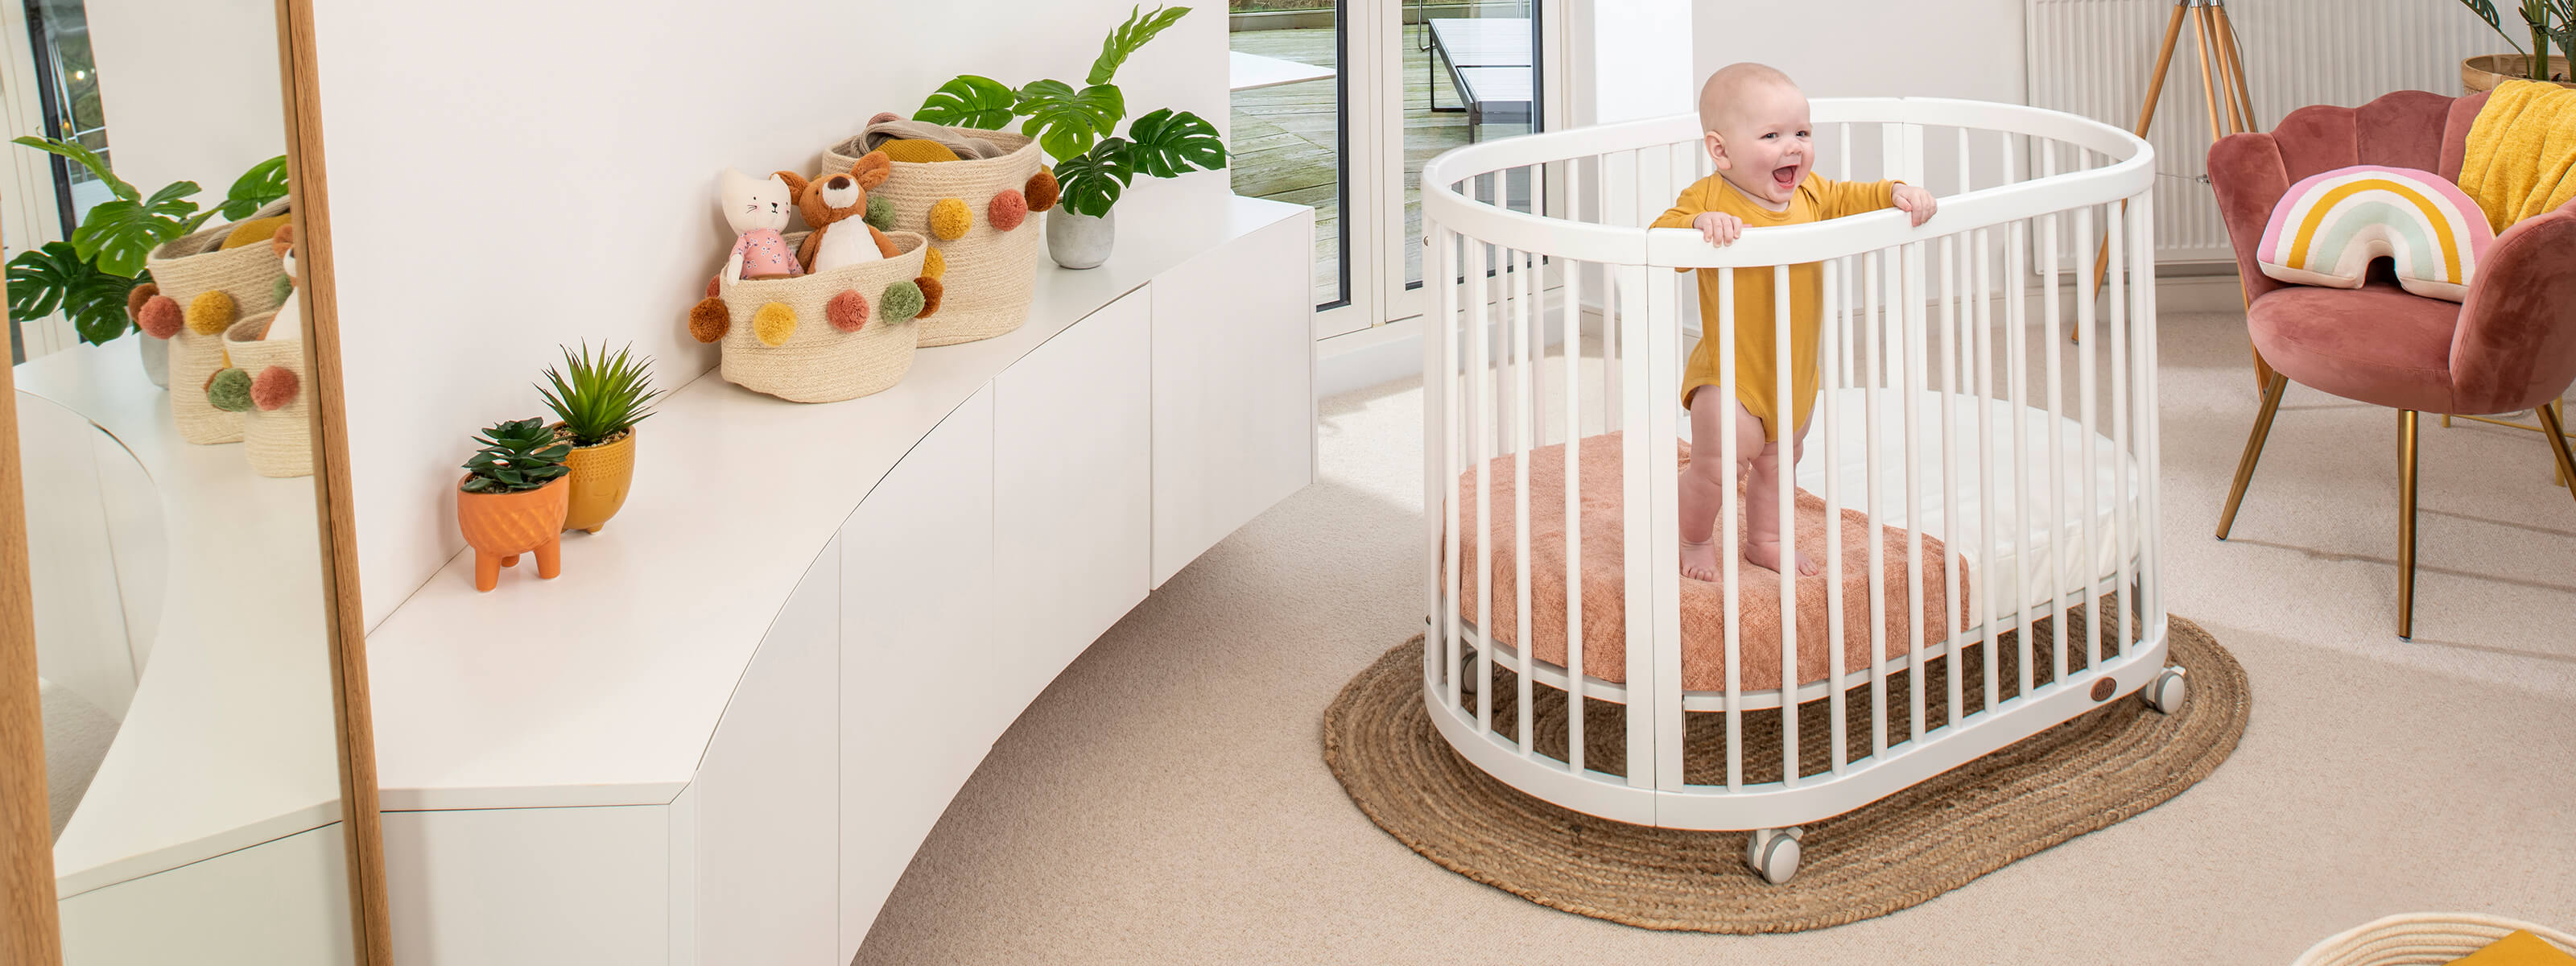 Product_Page_Lifestyle_1600_x_600_Oasis_Oval_Cot_Barley_White__Low_Position-02_FORWEB__2x